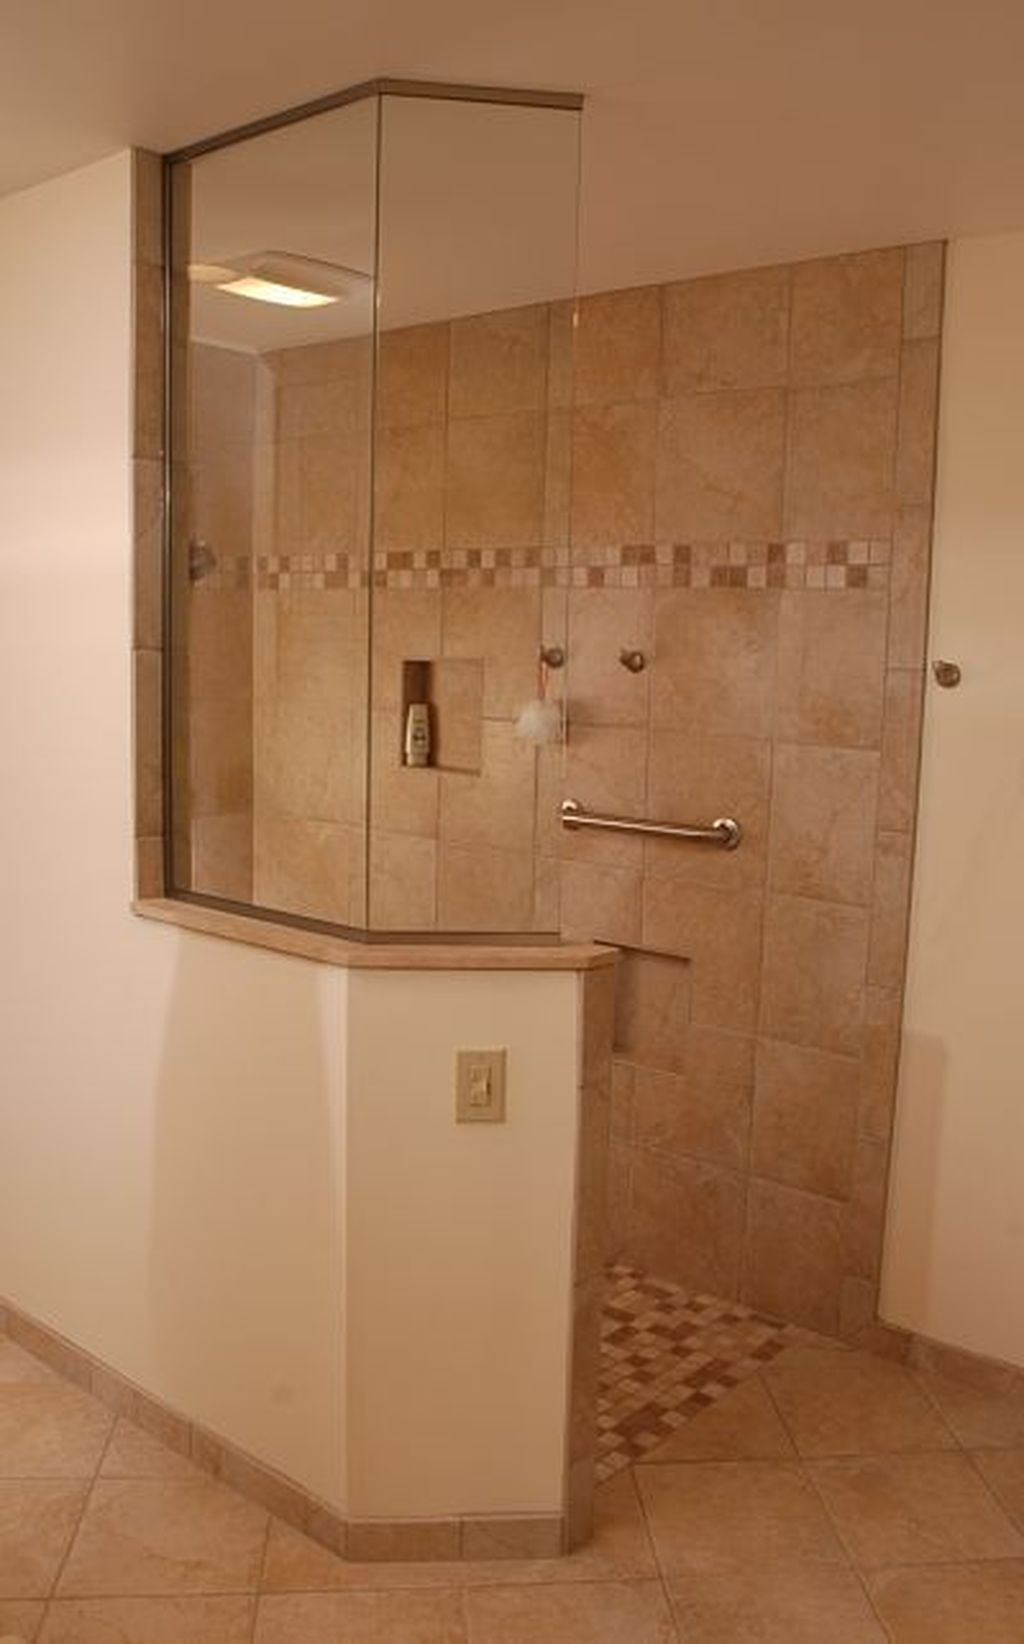 Incredible Curbless Shower Ideas For House26